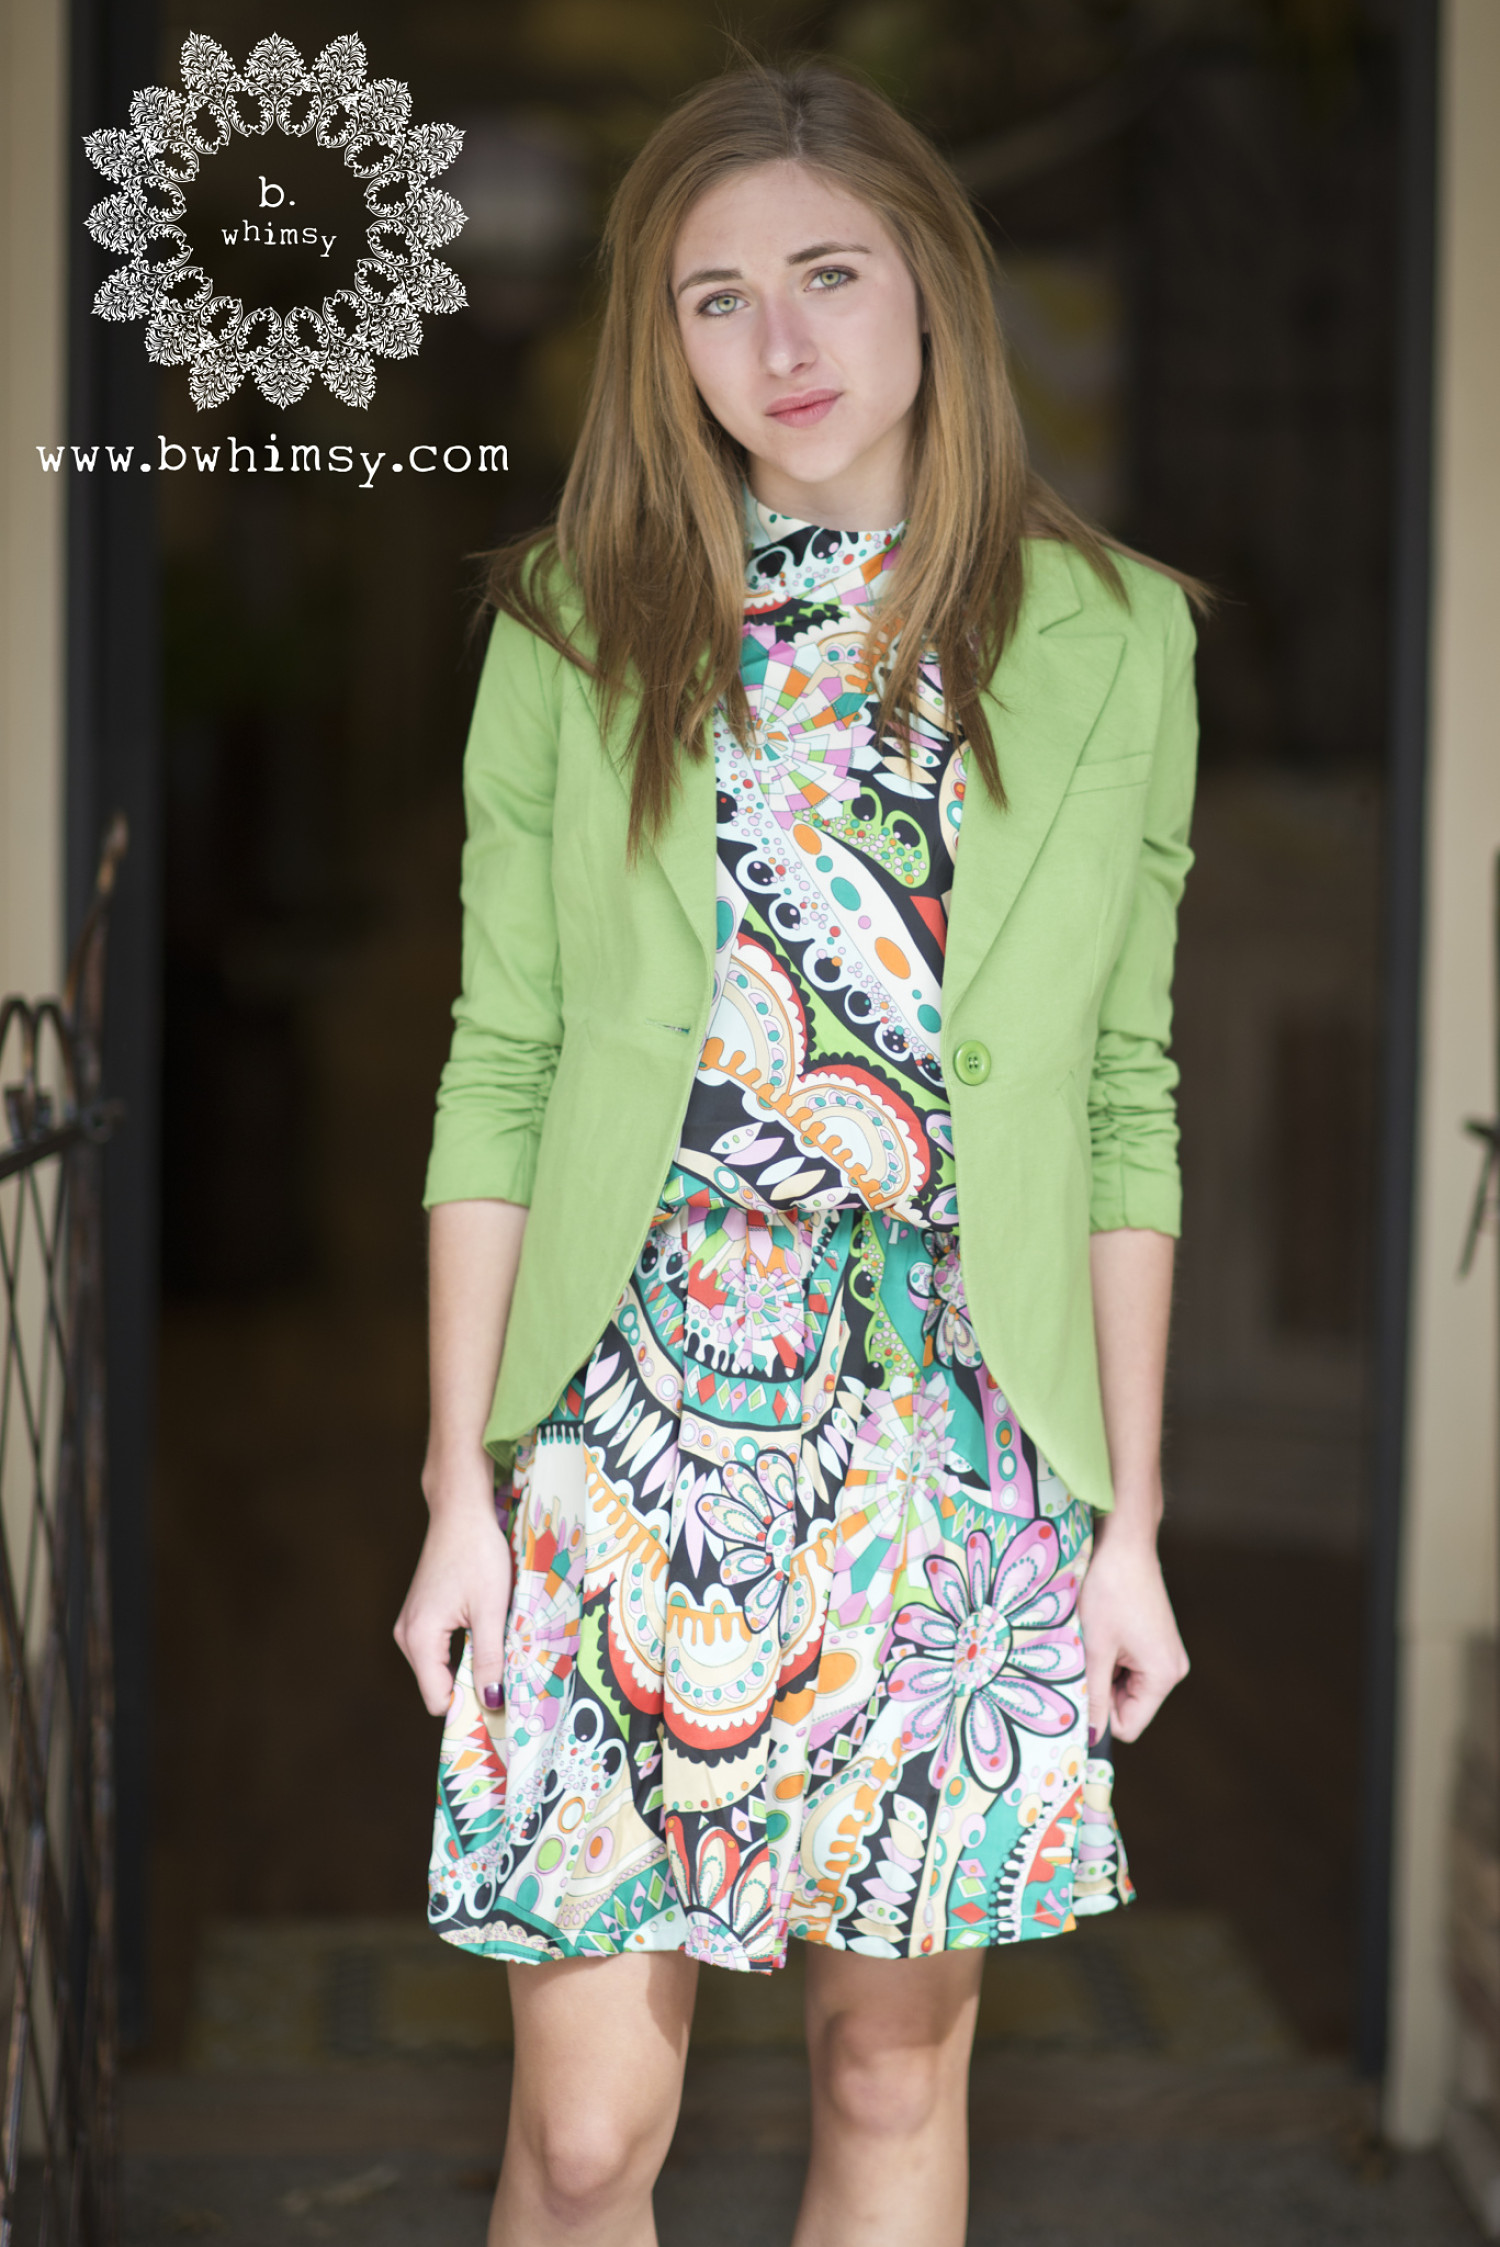 B. Whimsy - Spring Looks